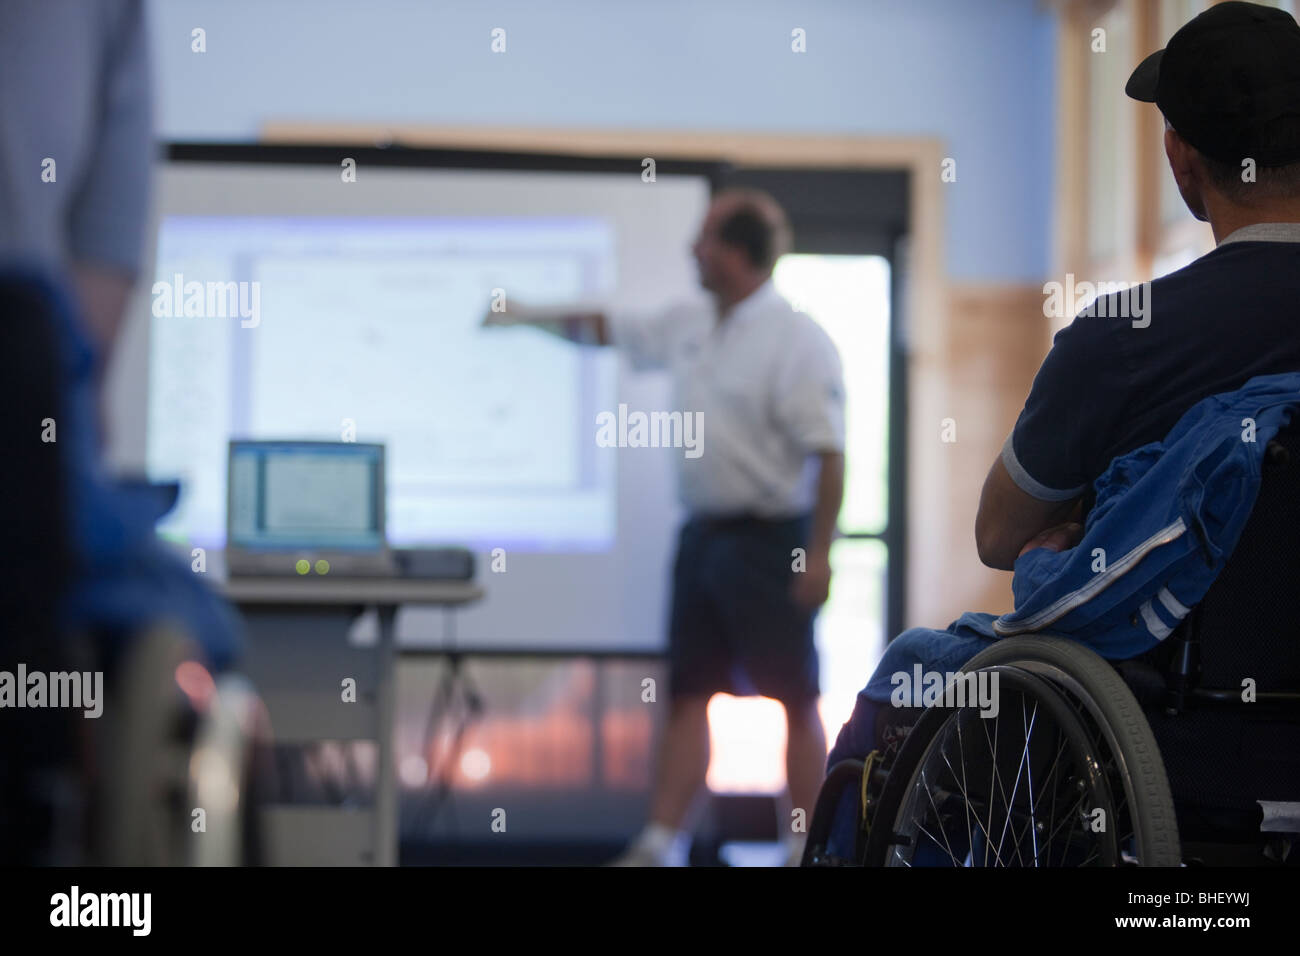 Disability sports training class - Stock Image